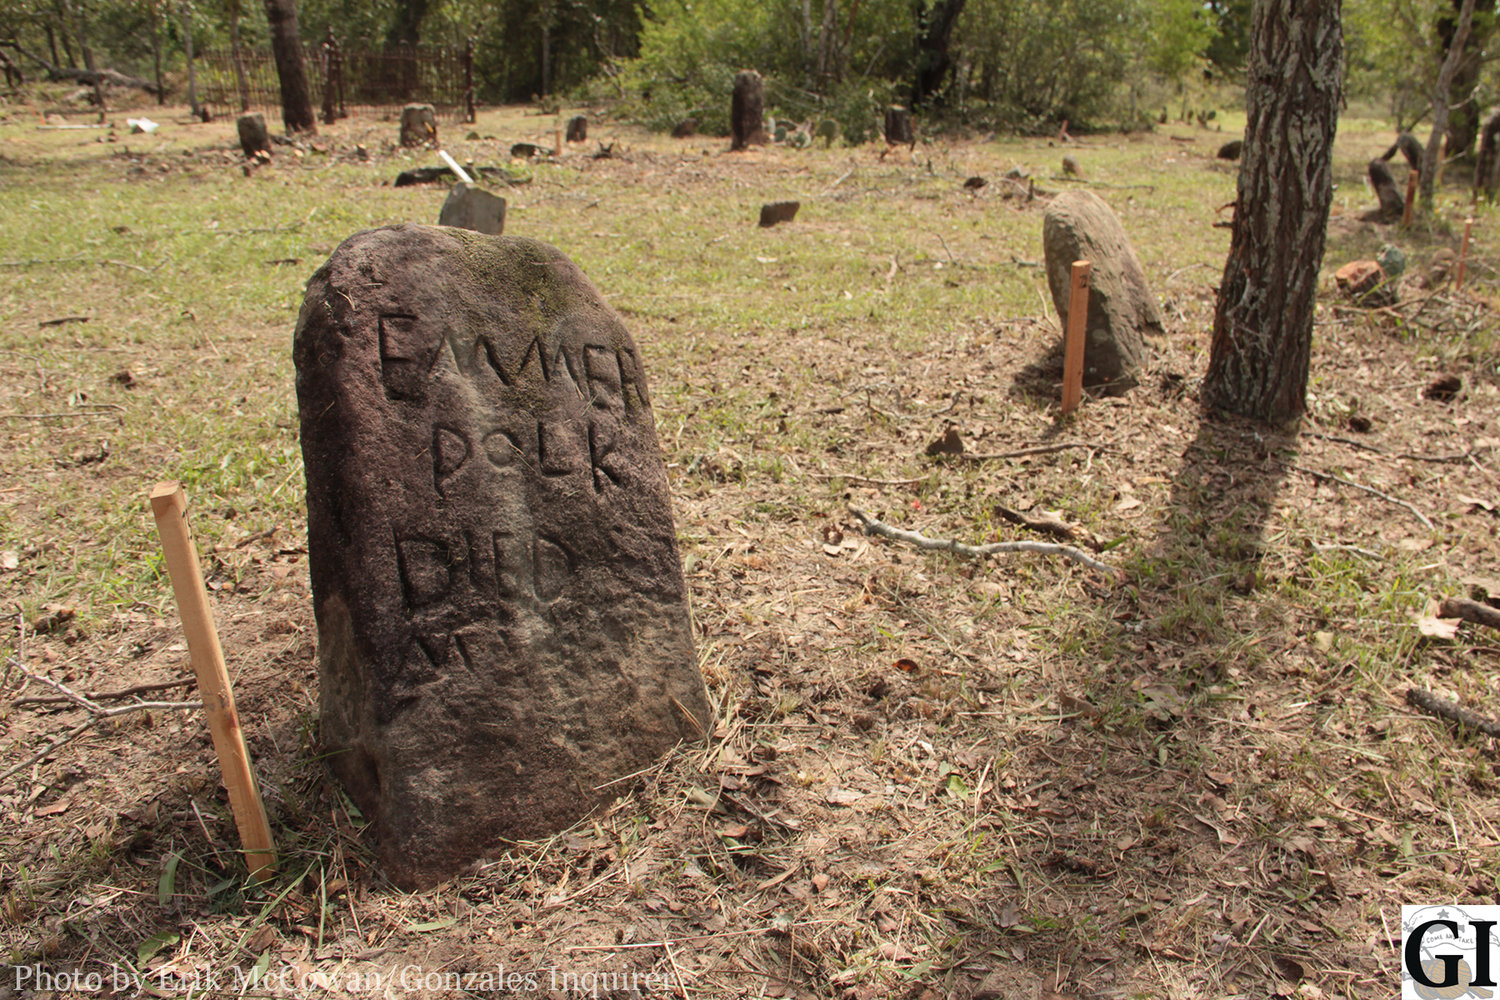 An old tombstone marks the spot of a former resident of the forgotten Terryville Community south of town. Most gravesites are marked by simple sandstones with names that have been worn off over the decades.